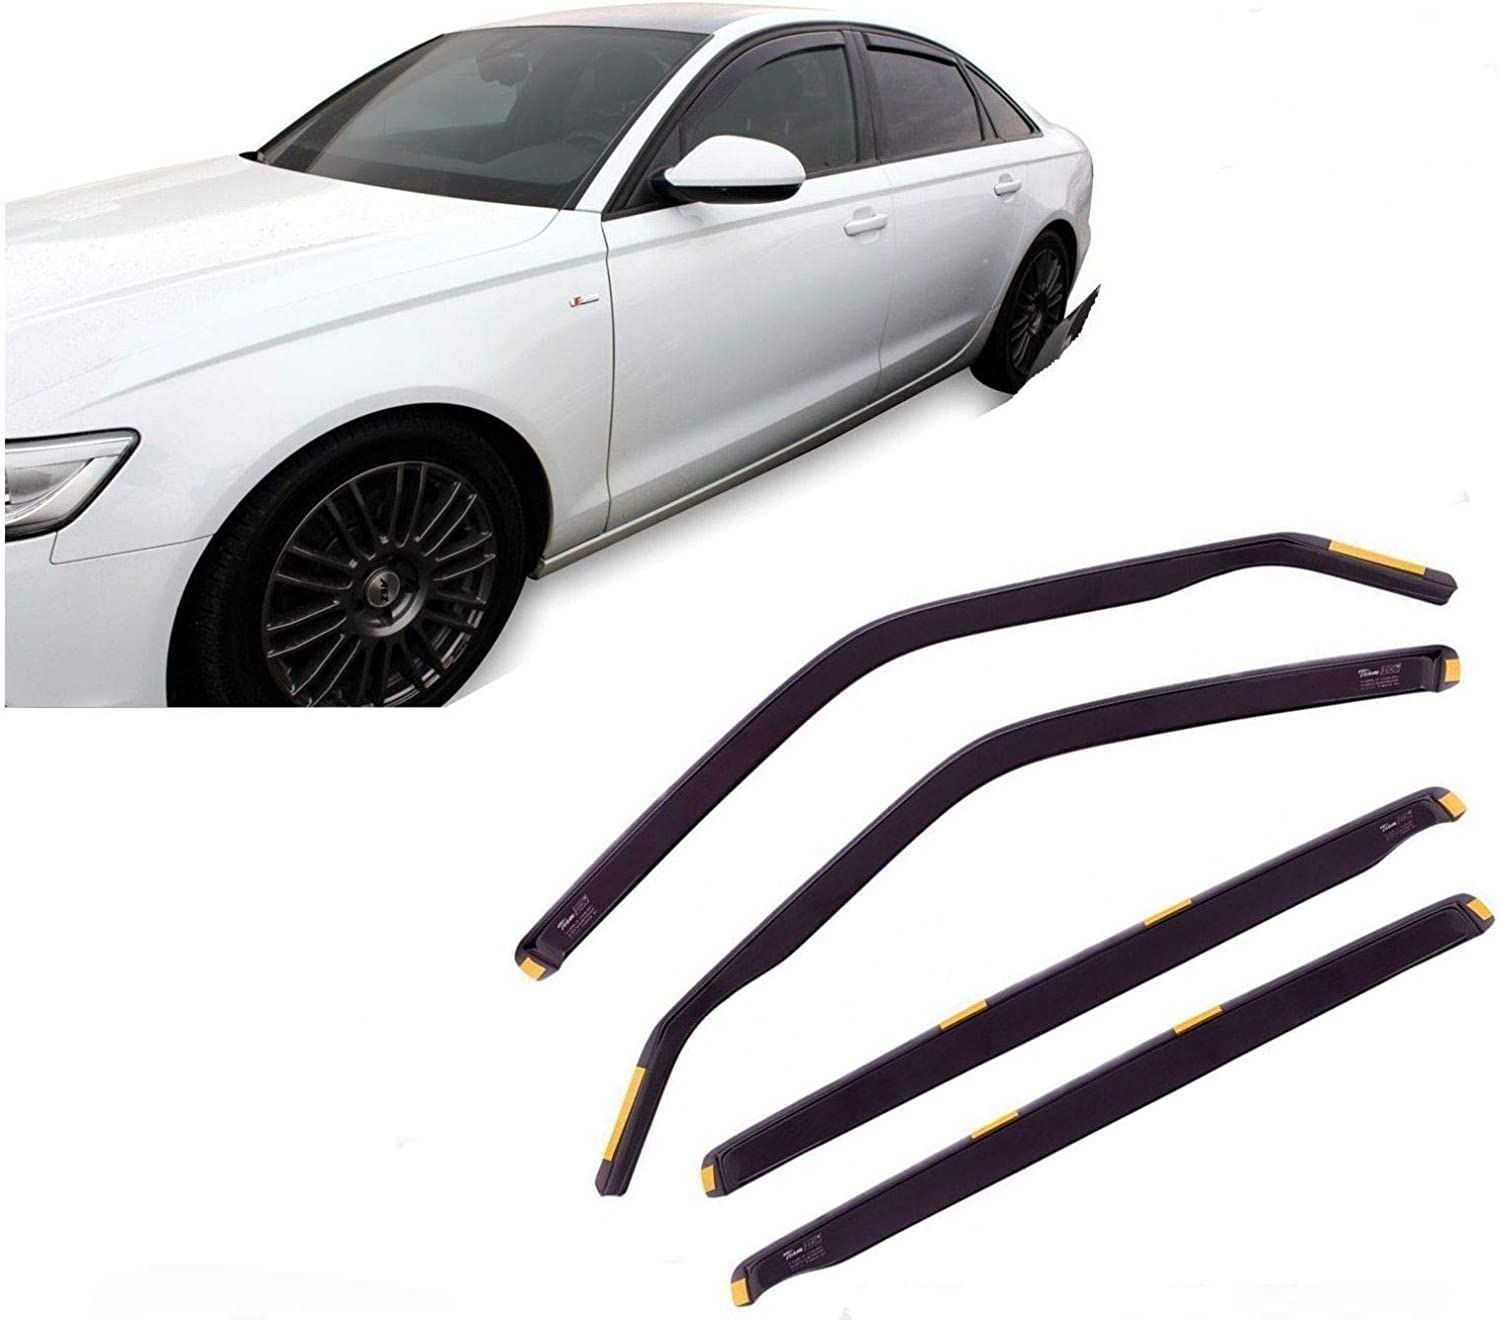 Saloon UKB4C Tinted Front Rear Window 4pc Wind Deflectors for A6 2011 on